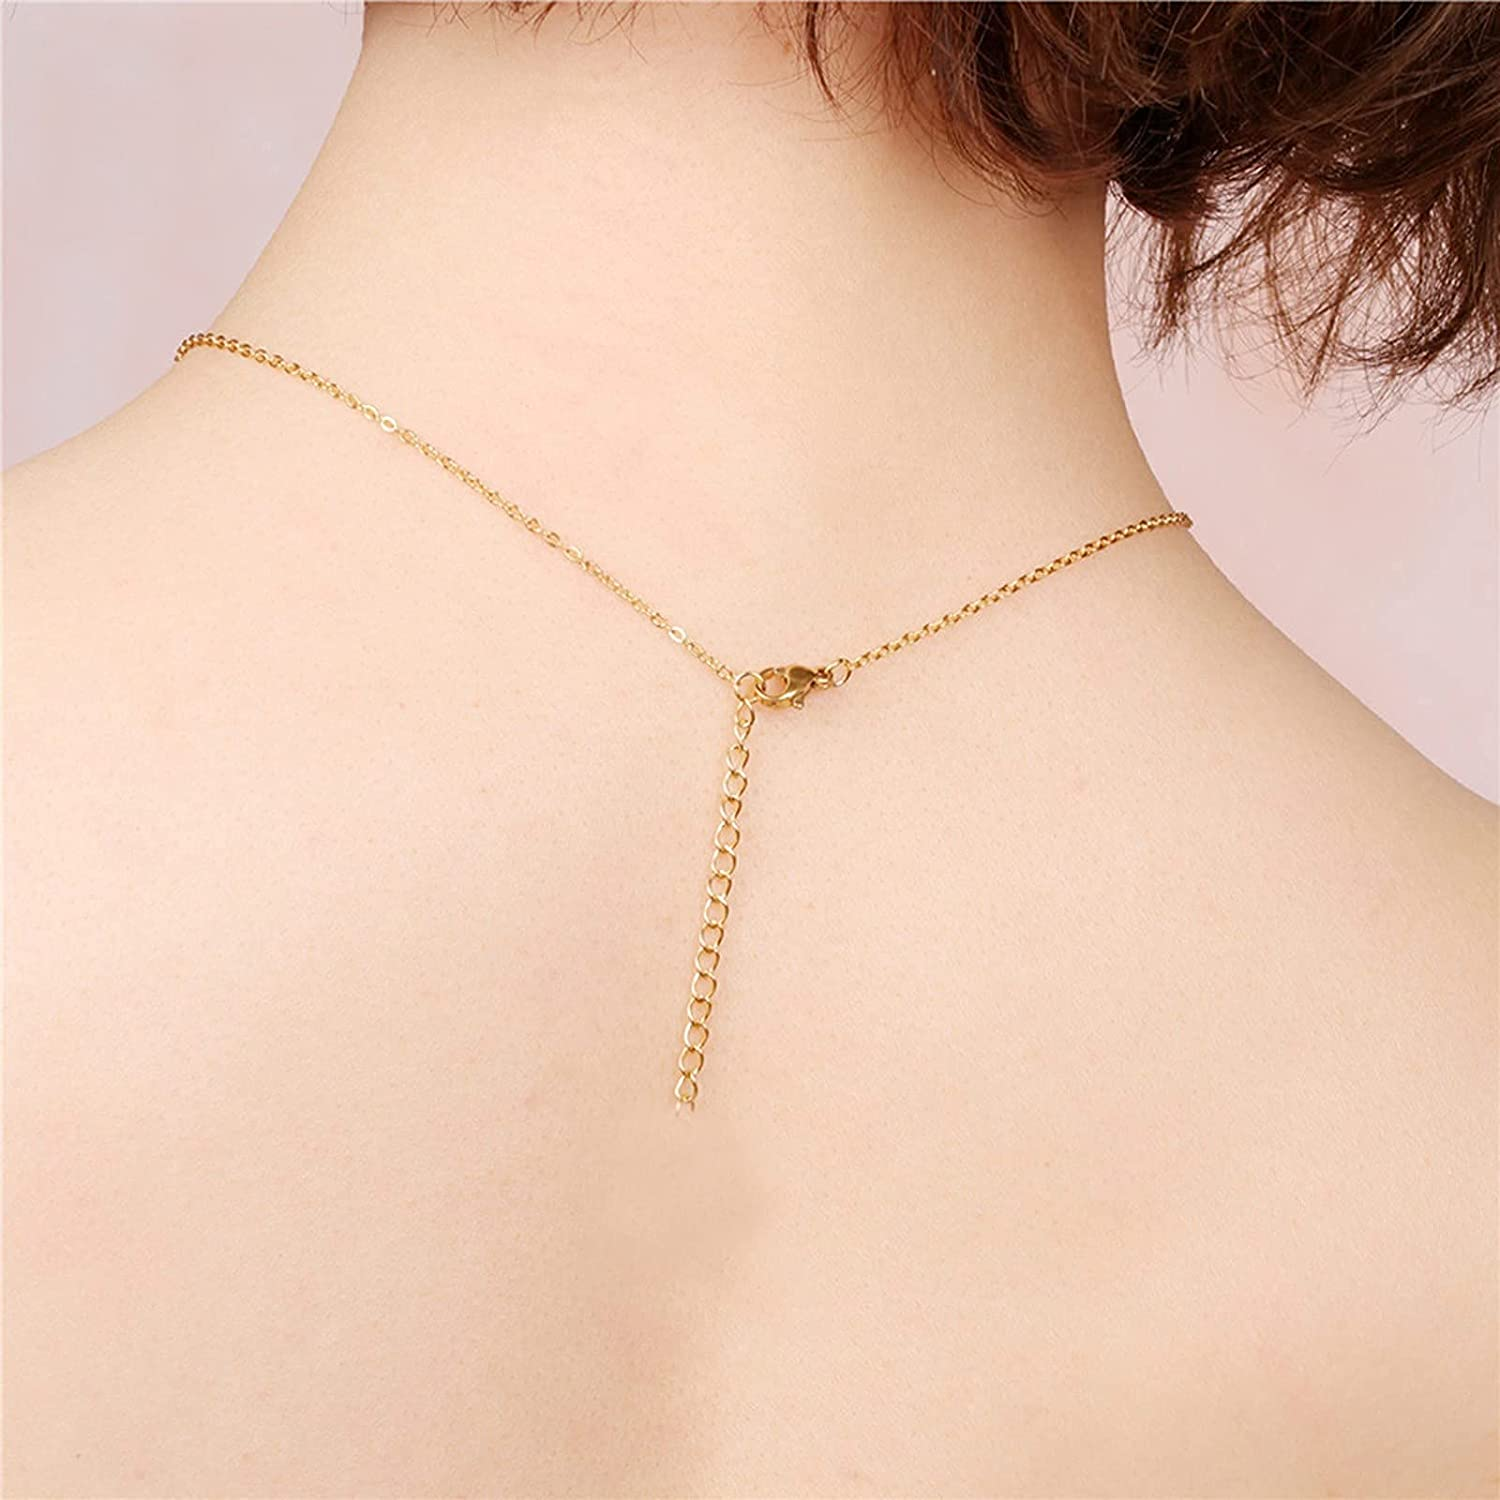 ZSWWang Initial Letters Heart Necklace for Women and Teen Girls, Necklaces with Cute Alphabets Pendant, Adjustable Lenght A-Z Alphabet Necklaces Jewelry Chain Choker Gift for Christmas/Birthday (K)